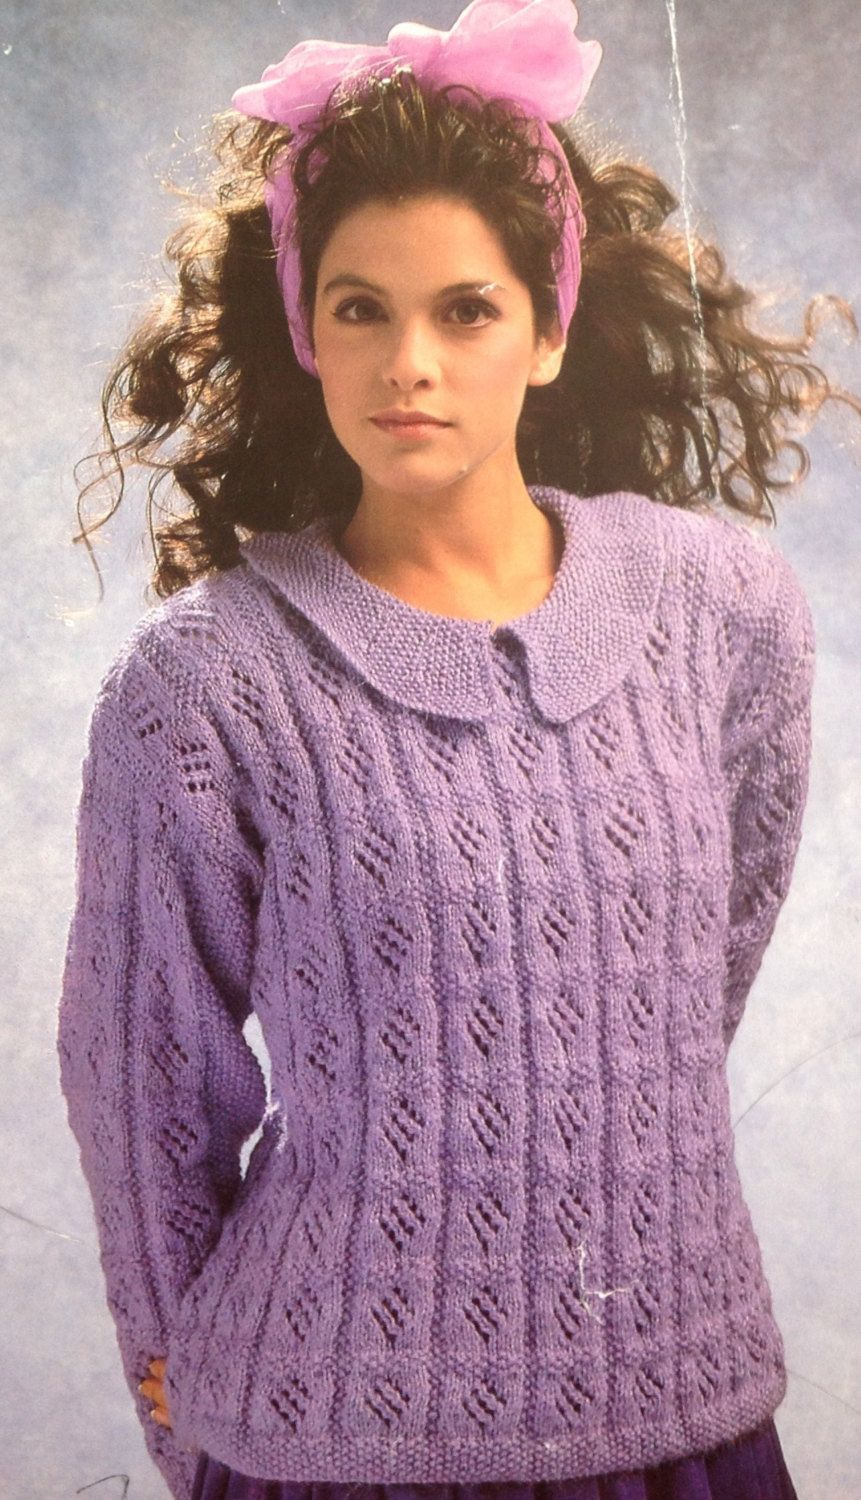 Knitting pattern ladies womans girls sweater jumper knitting pattern ladies womans girls sweater jumper pullover with collar lace work size 30 40in 75 100cm bankloansurffo Image collections